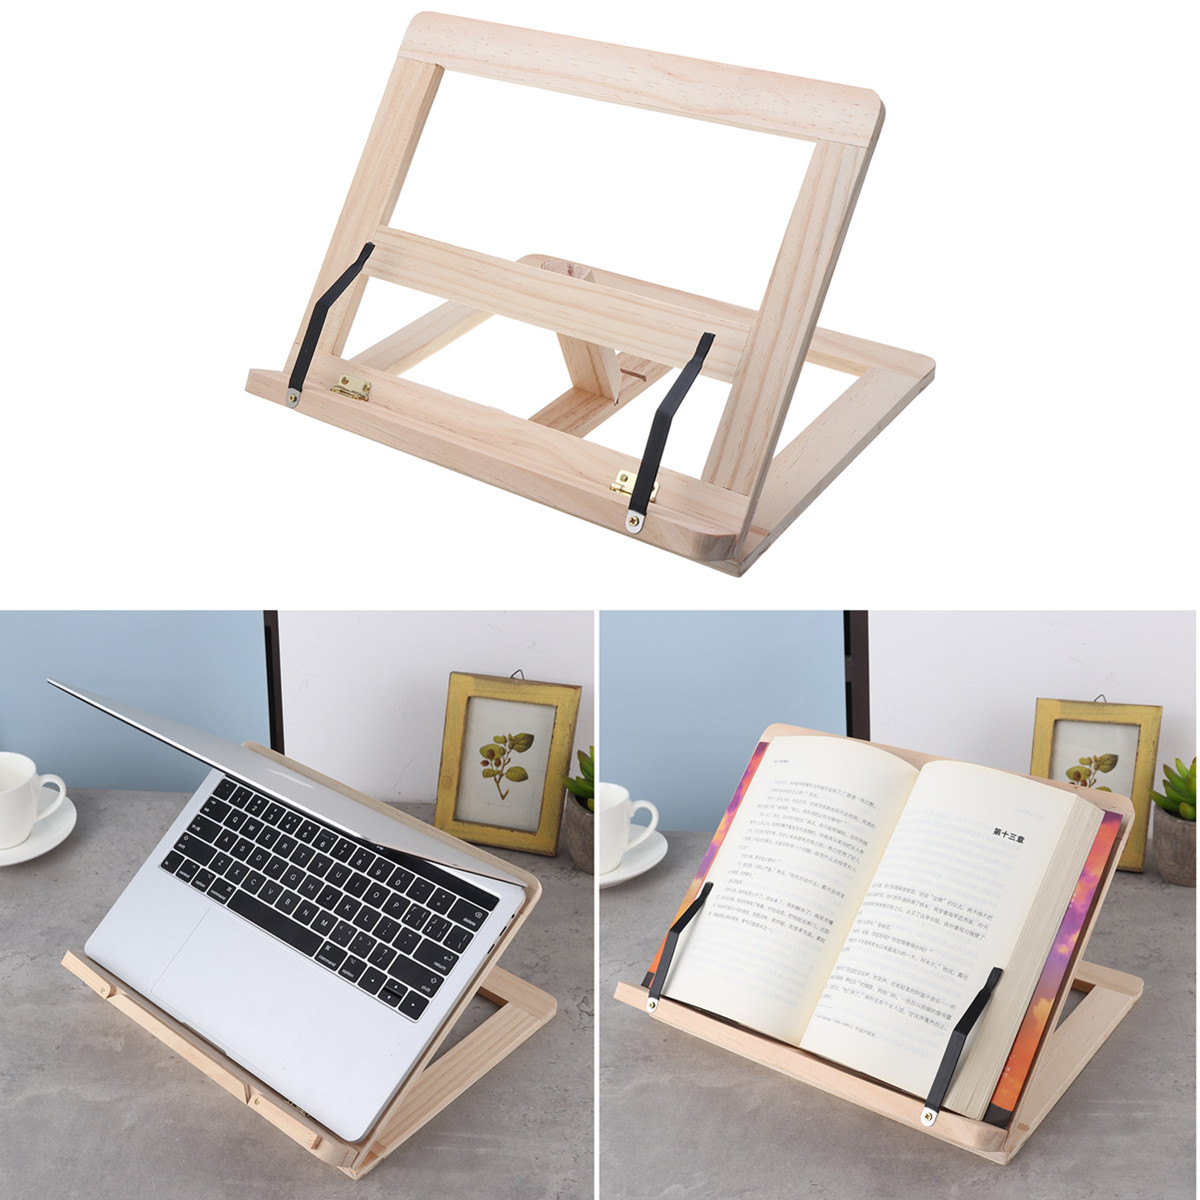 Multifunctional Foldable Wood Bookends Stand Cookbook Holder Reading Rack Wooden Reading Book Support Stand Holders Tablet PCMultifunctional Foldable Wood Bookends Stand Cookbook Holder Reading Rack Wooden Reading Book Support Stand Holders Tablet PC